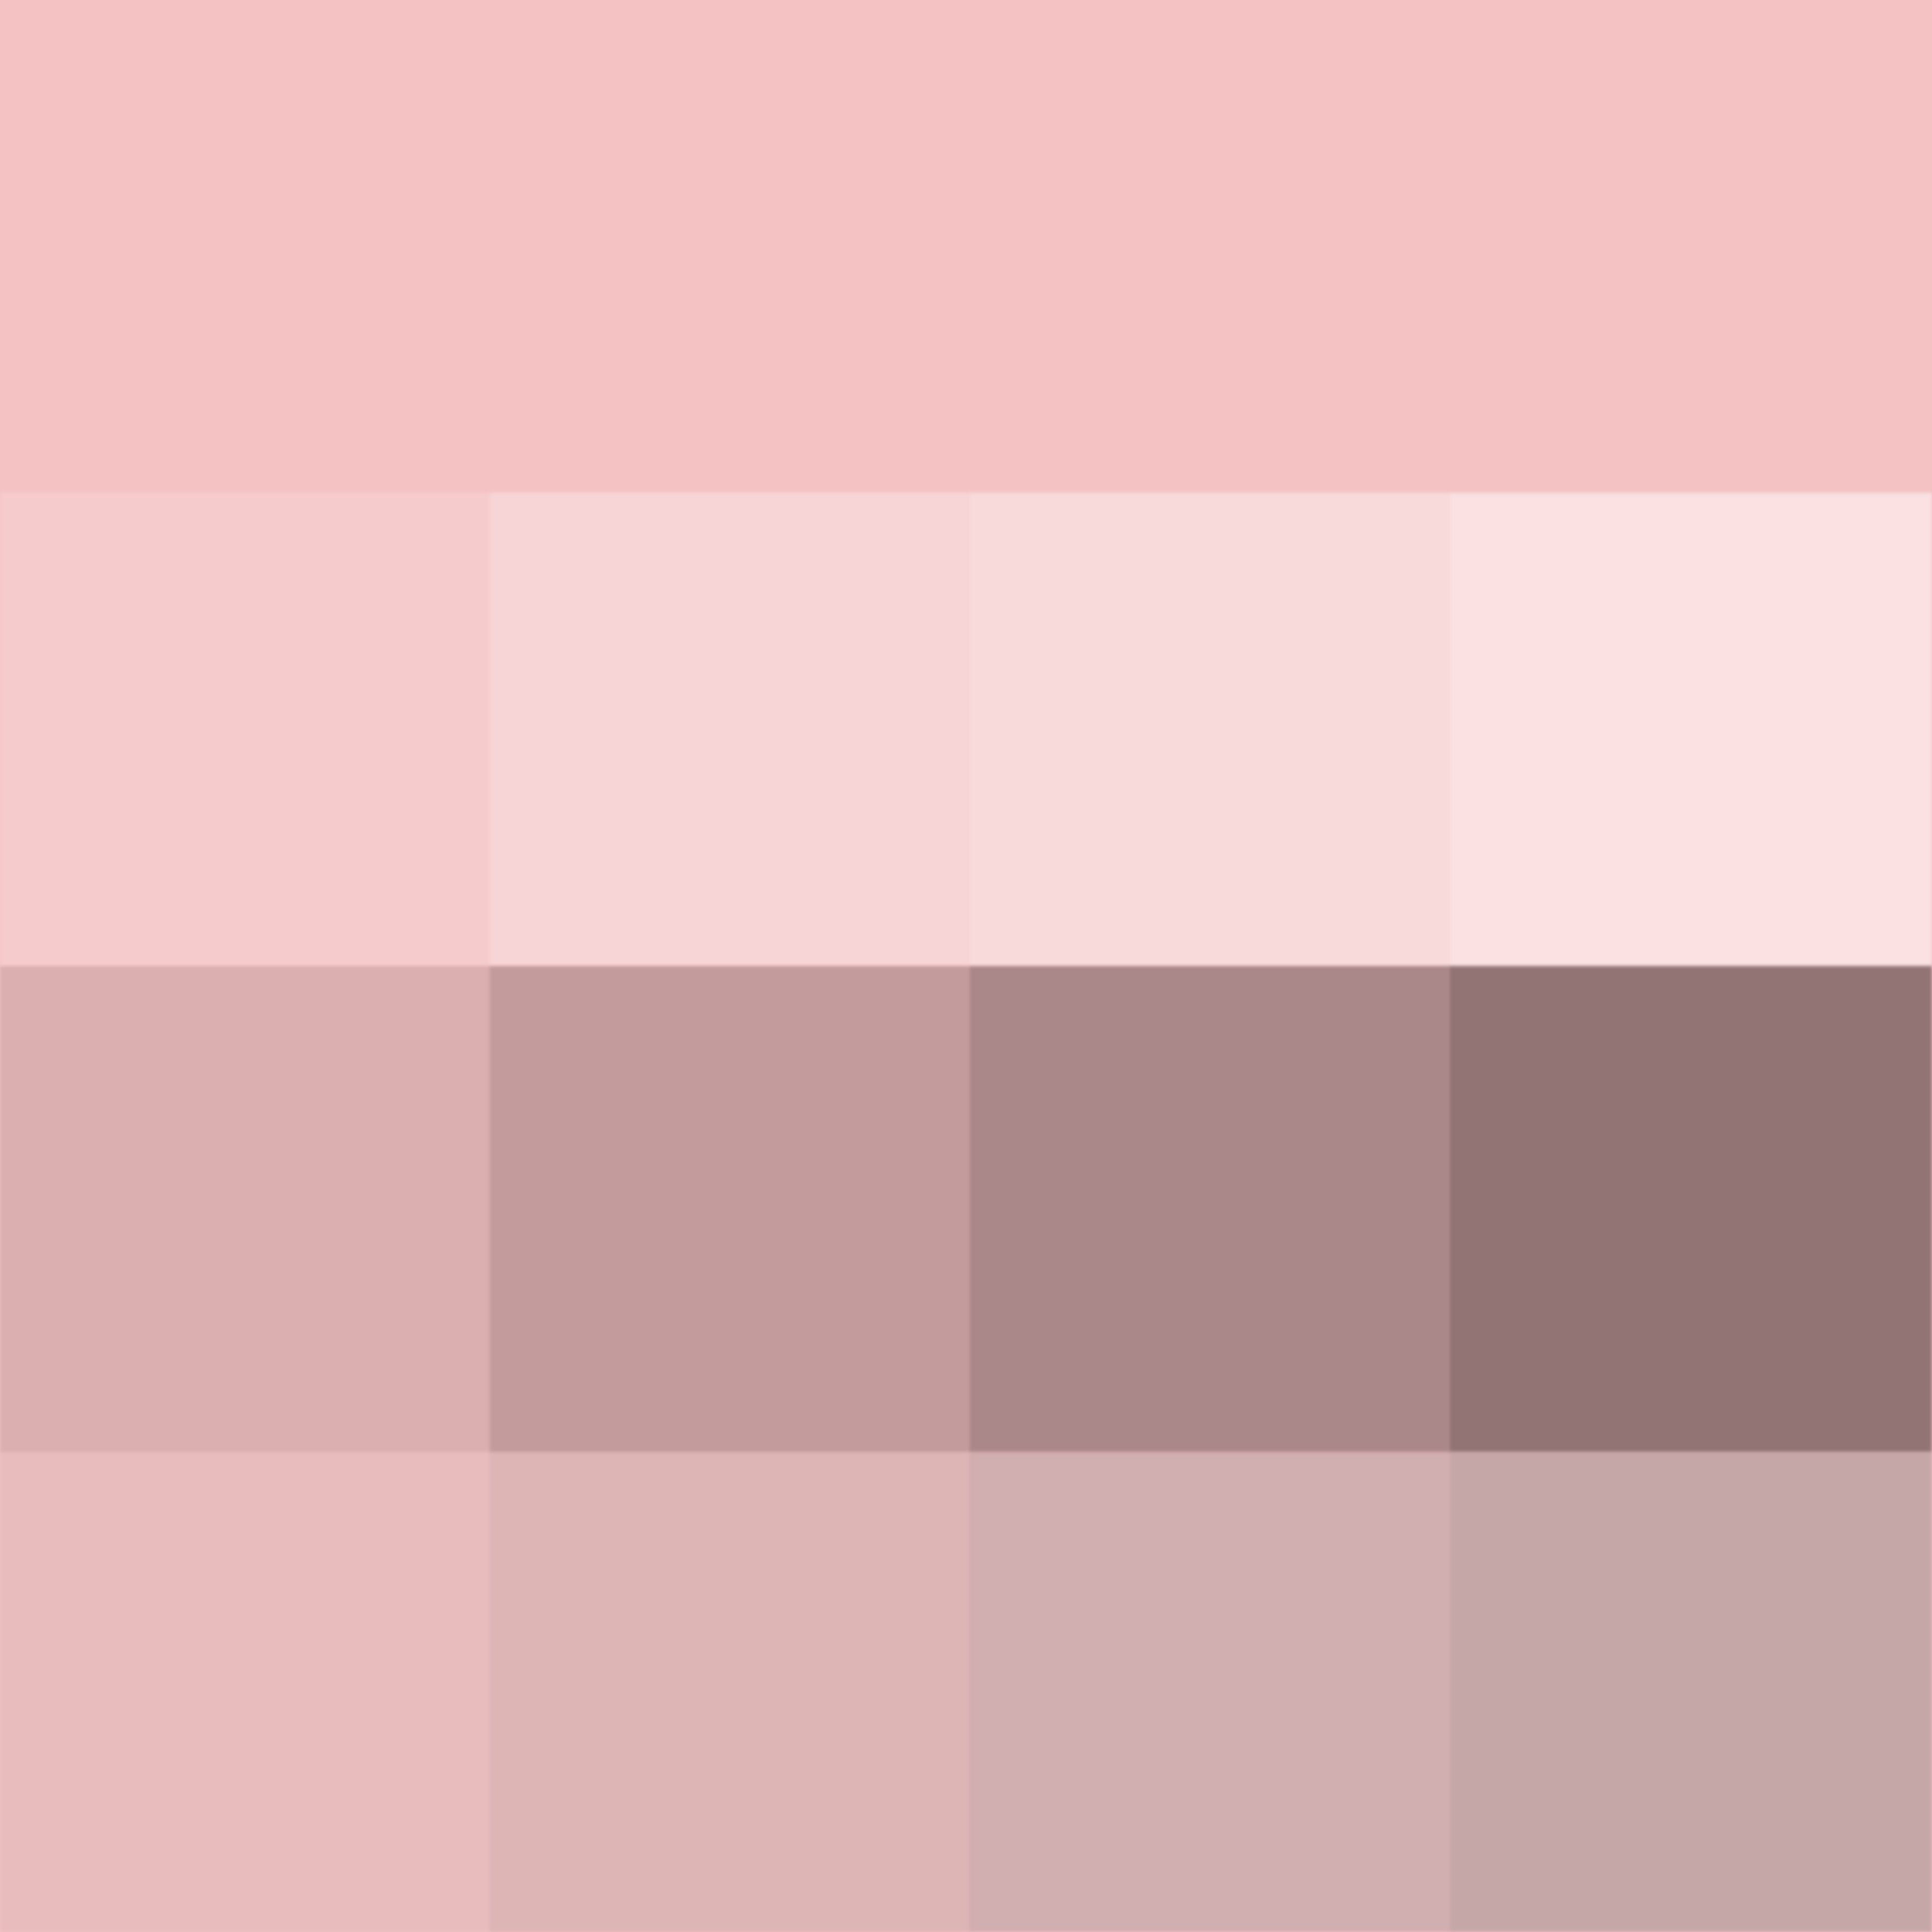 Baby Pink Shades Hue Pure Color With Tints White Black And Tones Grey Which Desaturates The